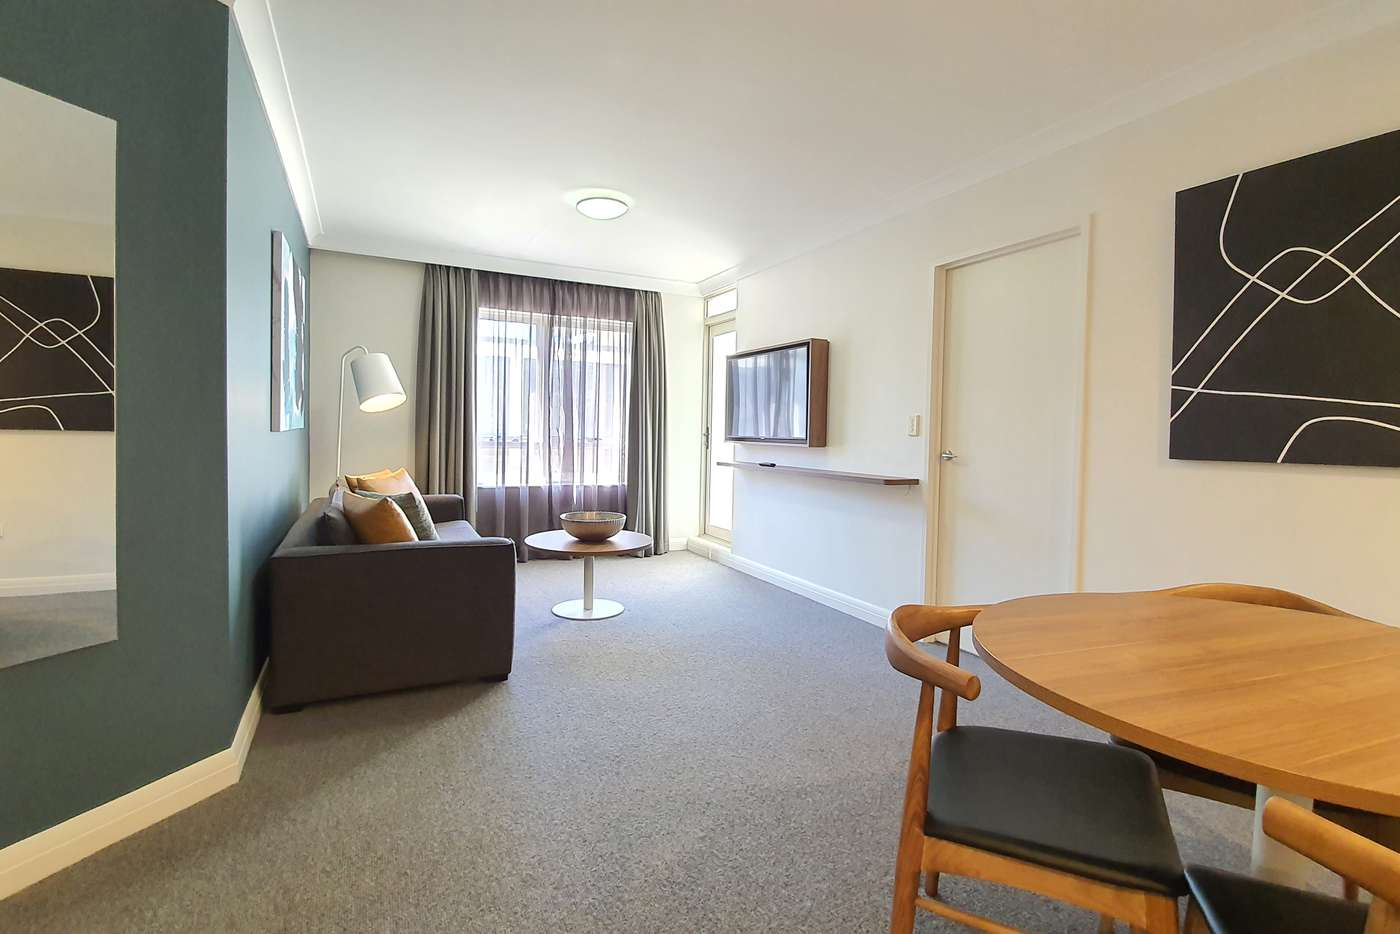 Main view of Homely apartment listing, 819/10 Brown Street, Chatswood NSW 2067